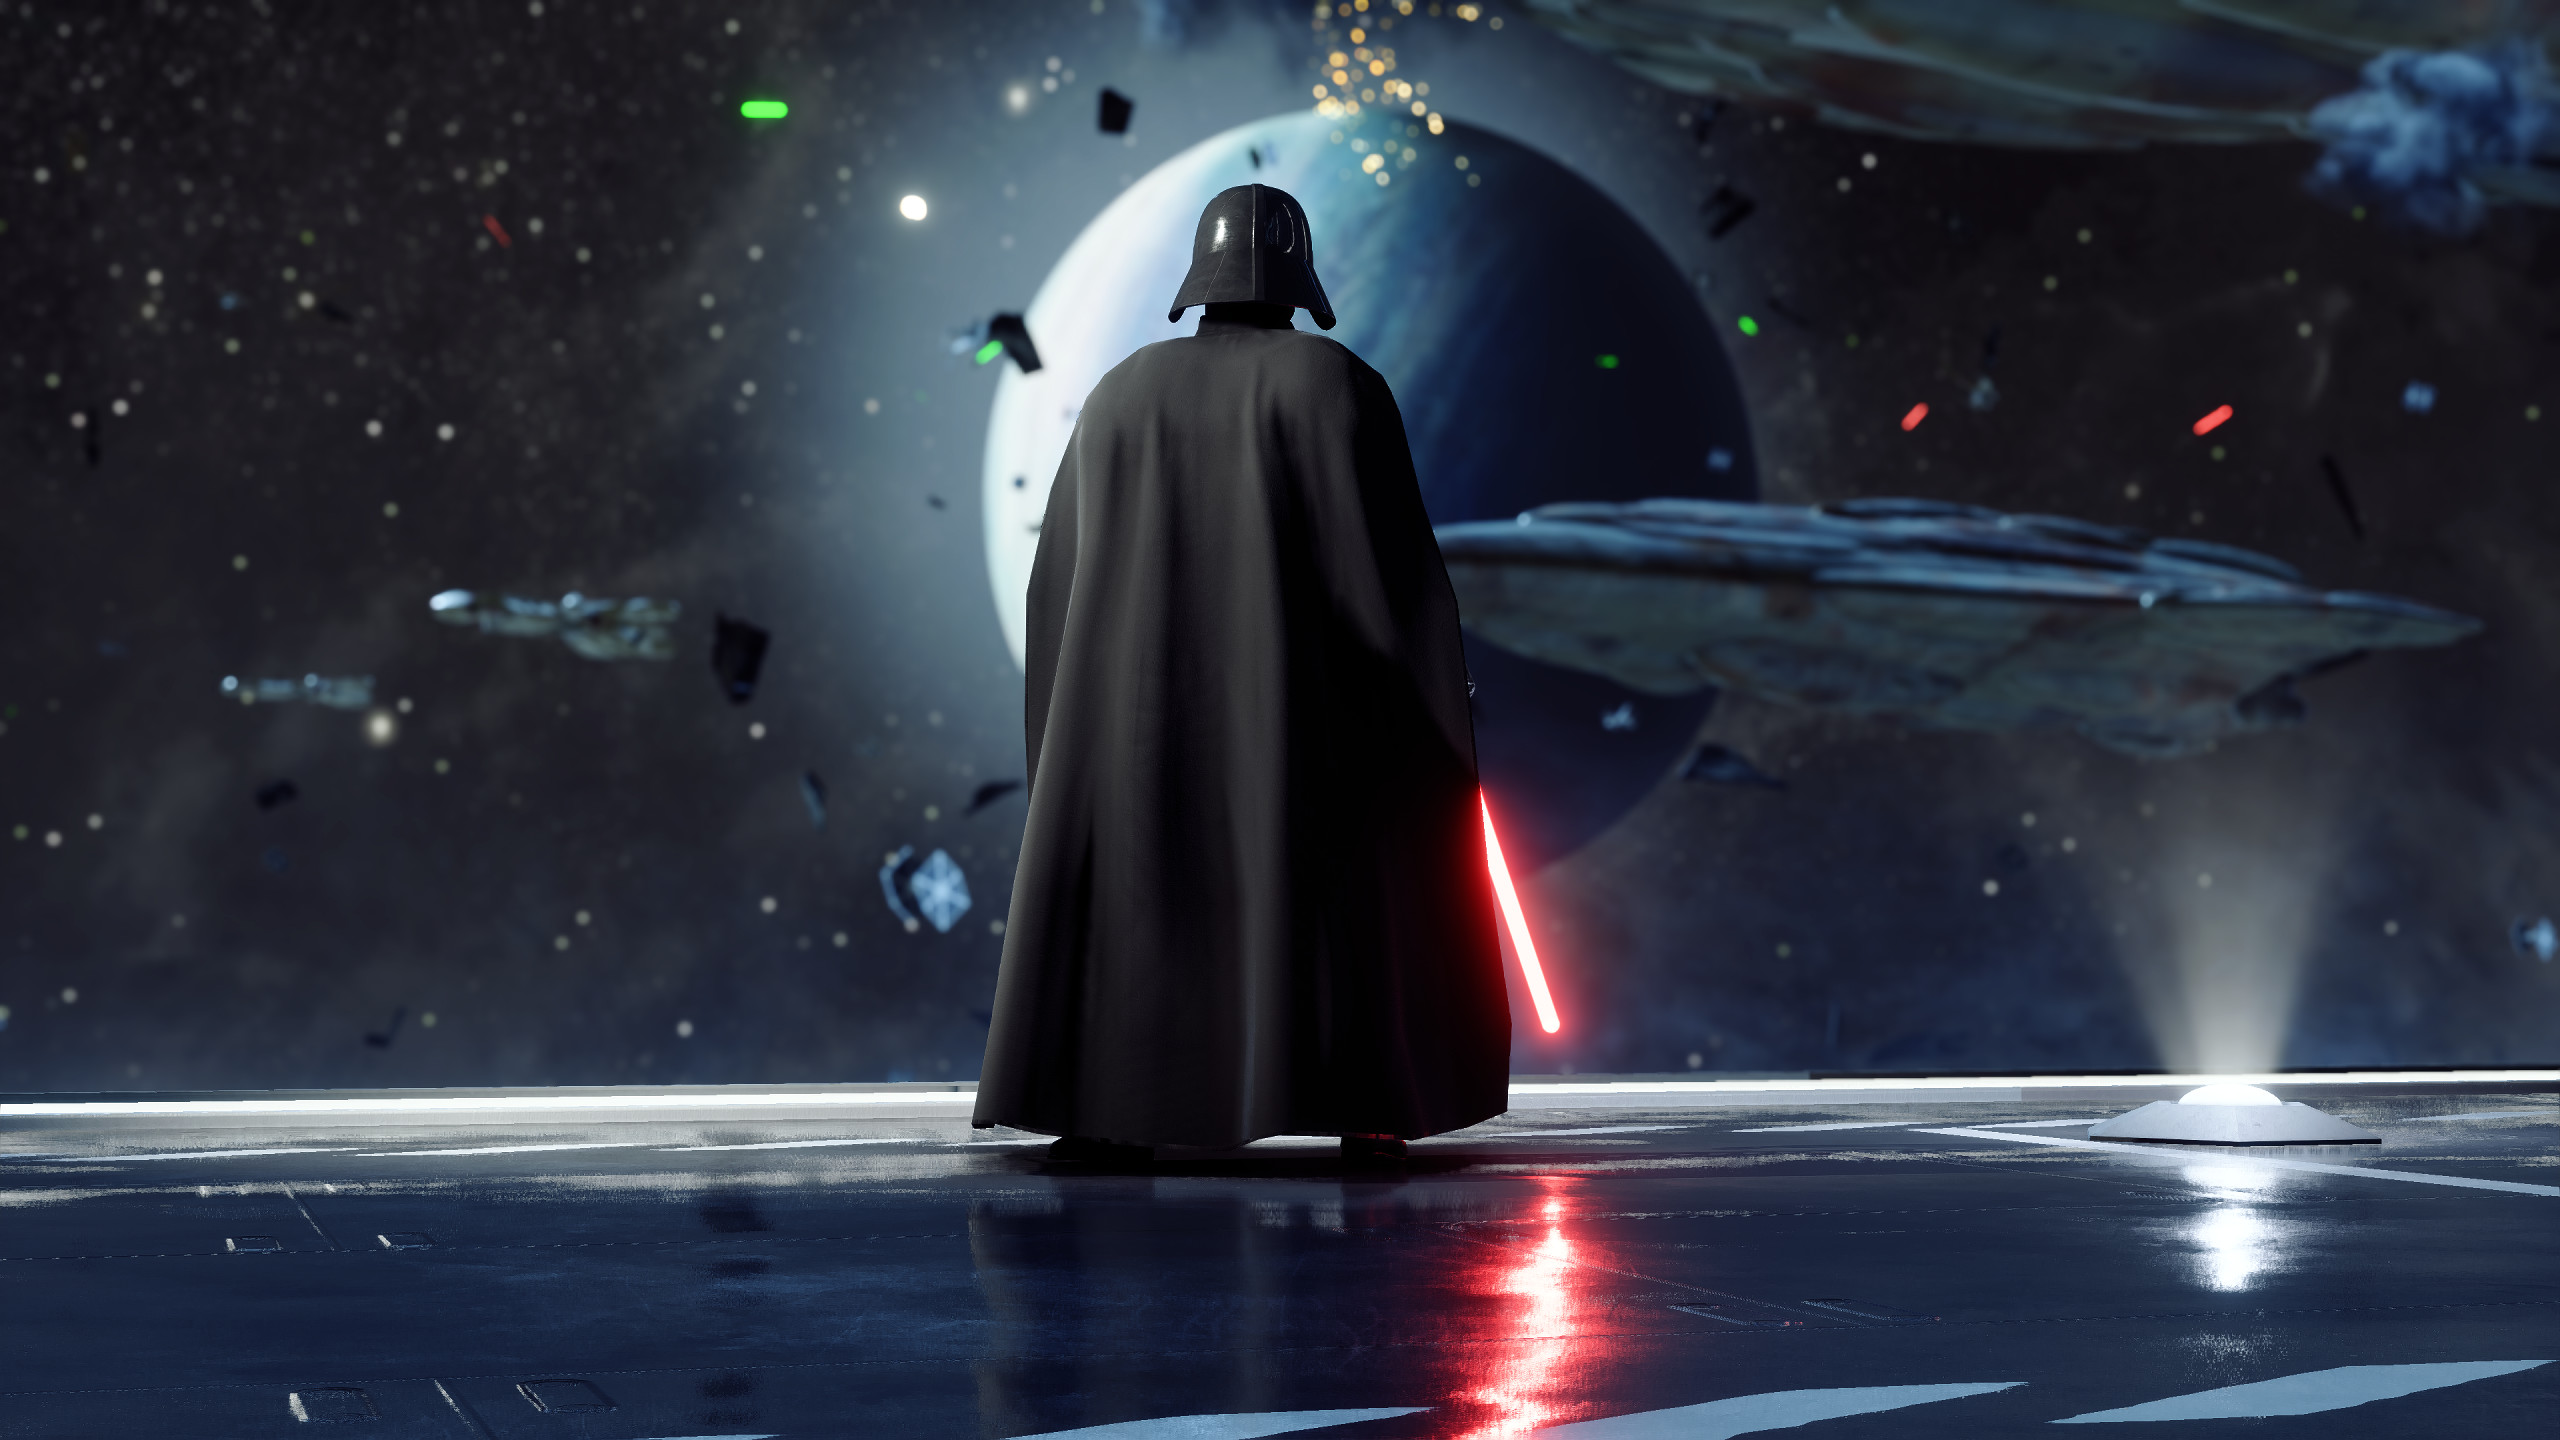 Darth Vader Wallpapers Hd 1920x1080 77 Background Pictures